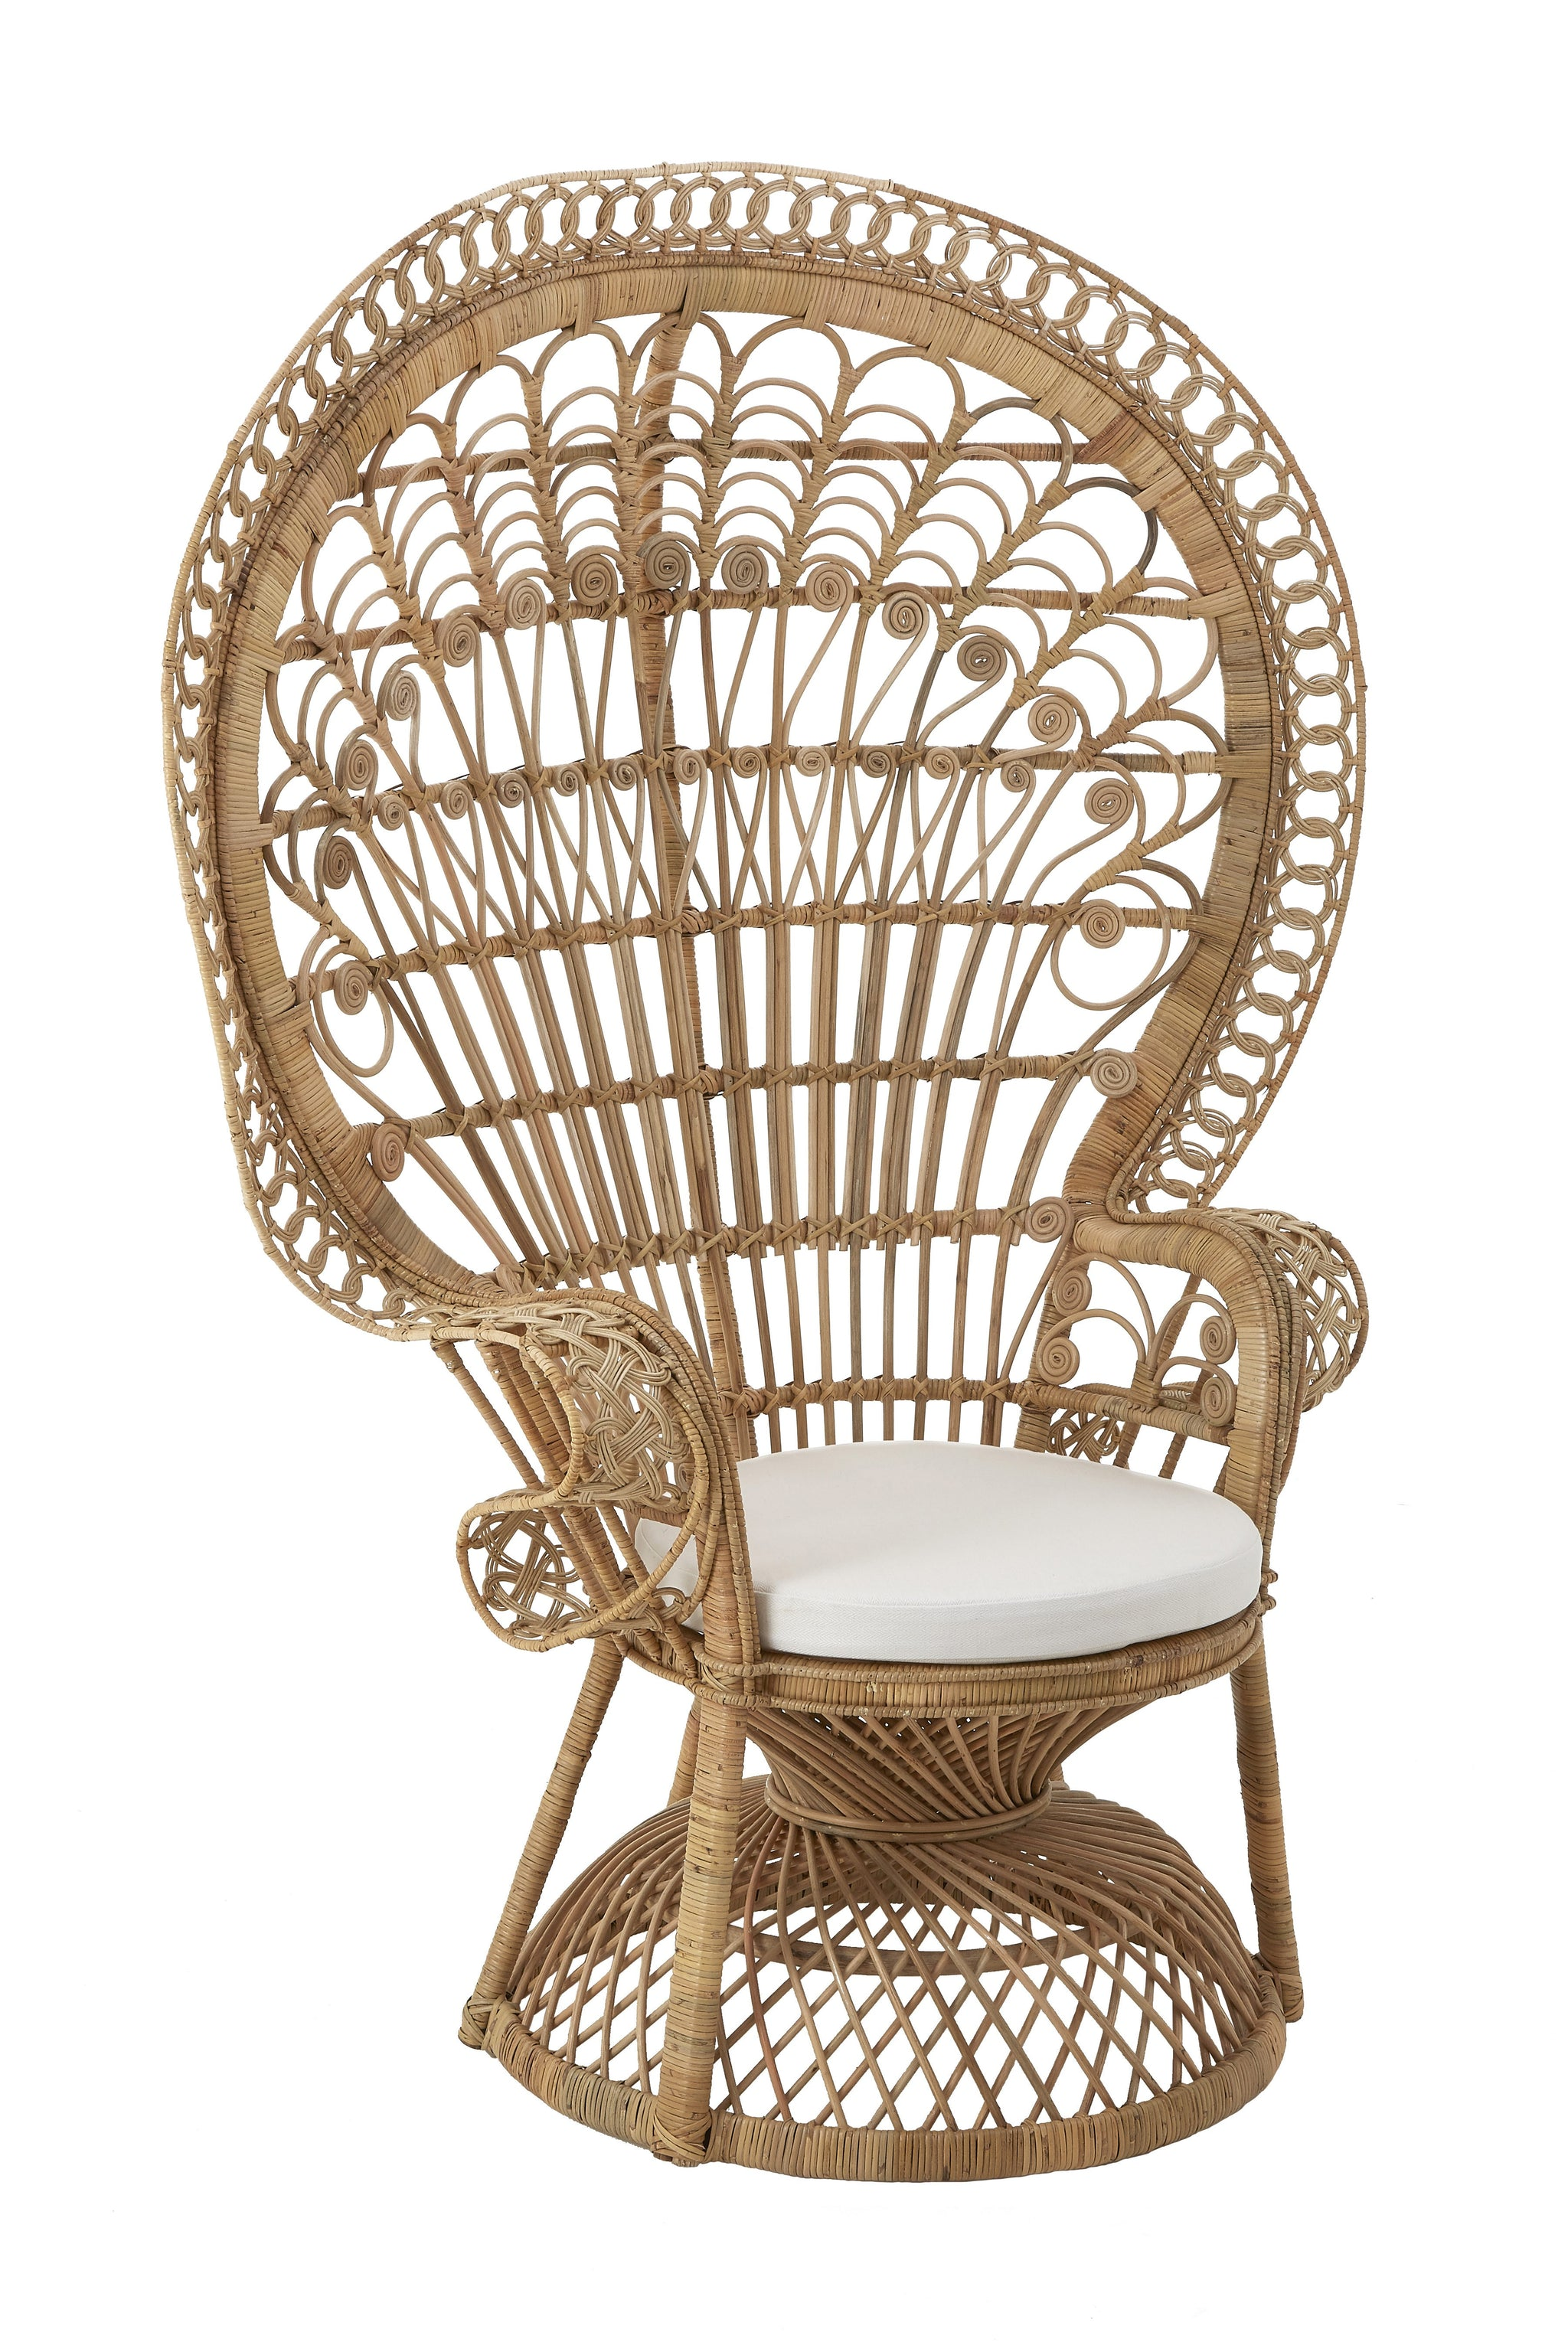 Woodstock Peacock Rattan Chair Natural